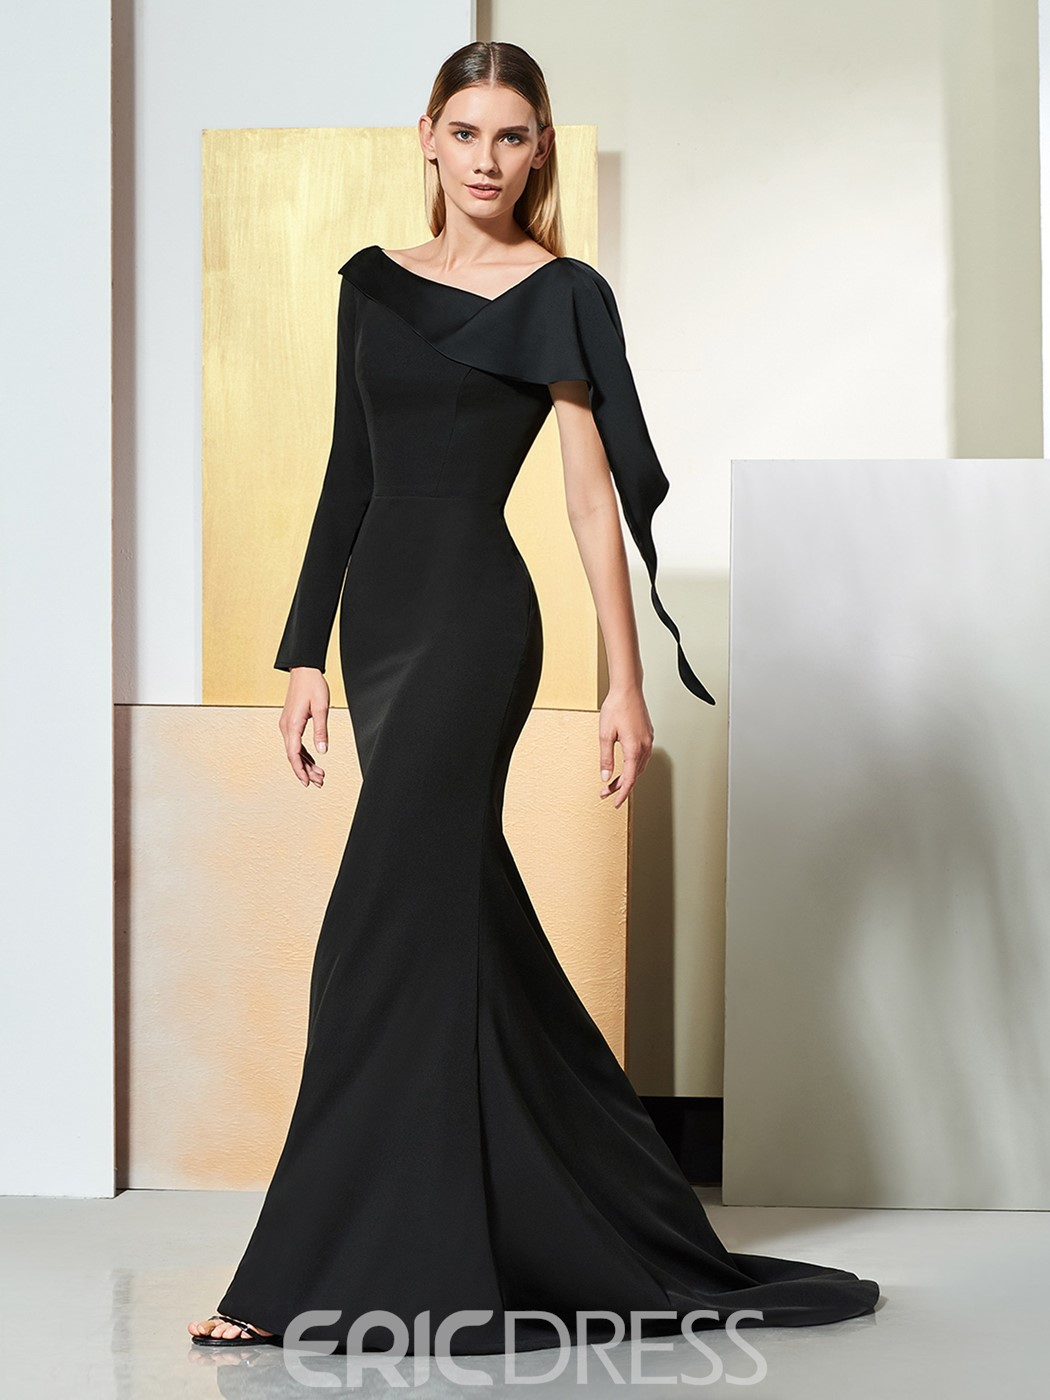 92a4f321cedc Ericdress One Shoulder Long Sleeve Black Mermaid Evening Dress ...